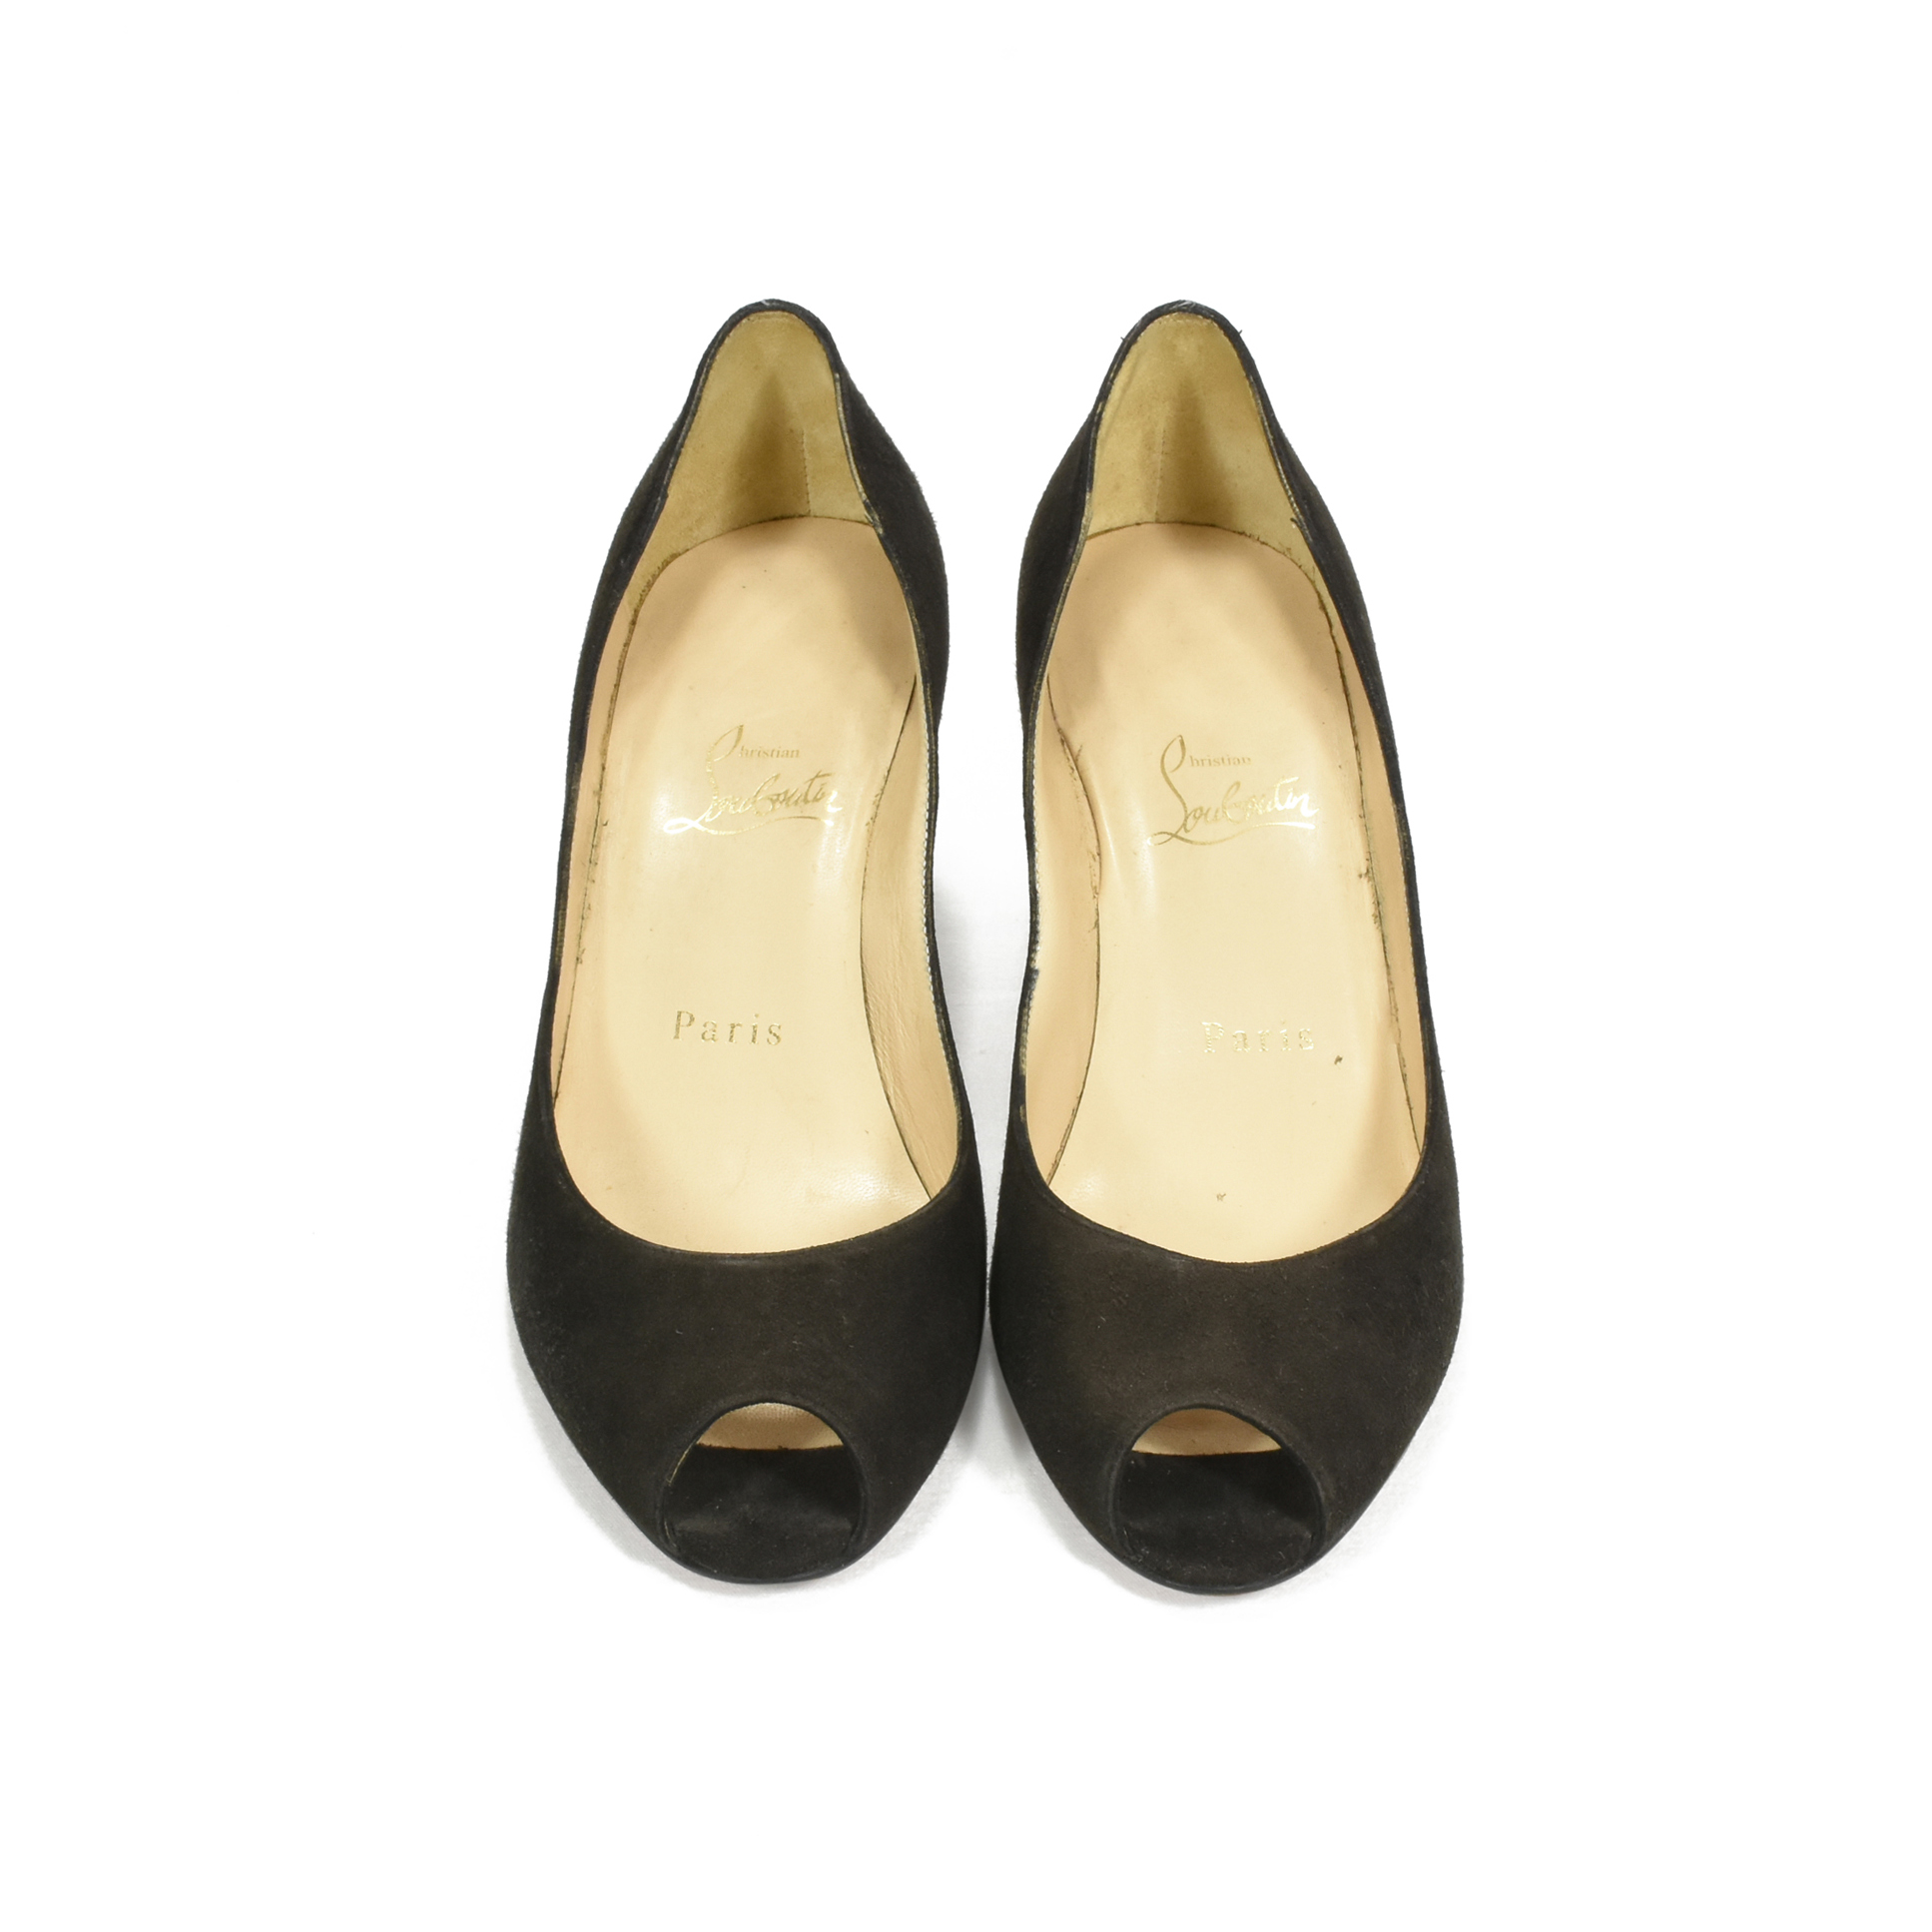 low priced 59a38 a8cfd Suede Peep-Toe Pumps